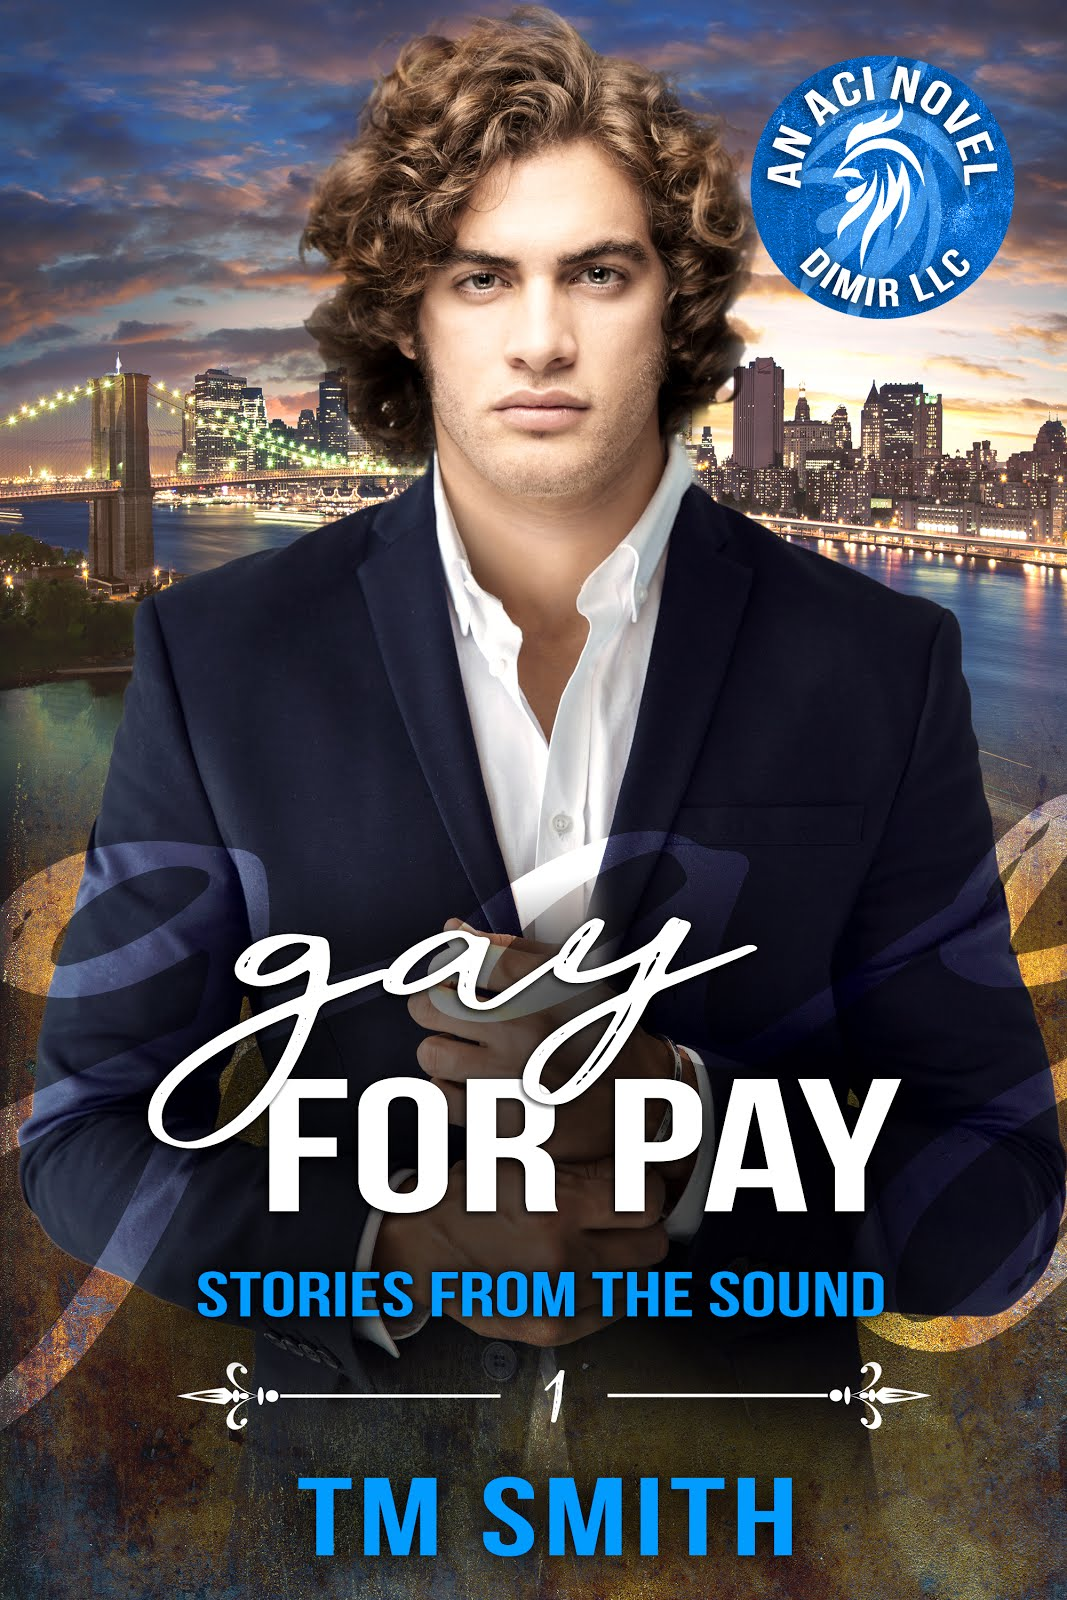 Gay for Pay (Stories from the Sound book 1) Preorder your copy now!